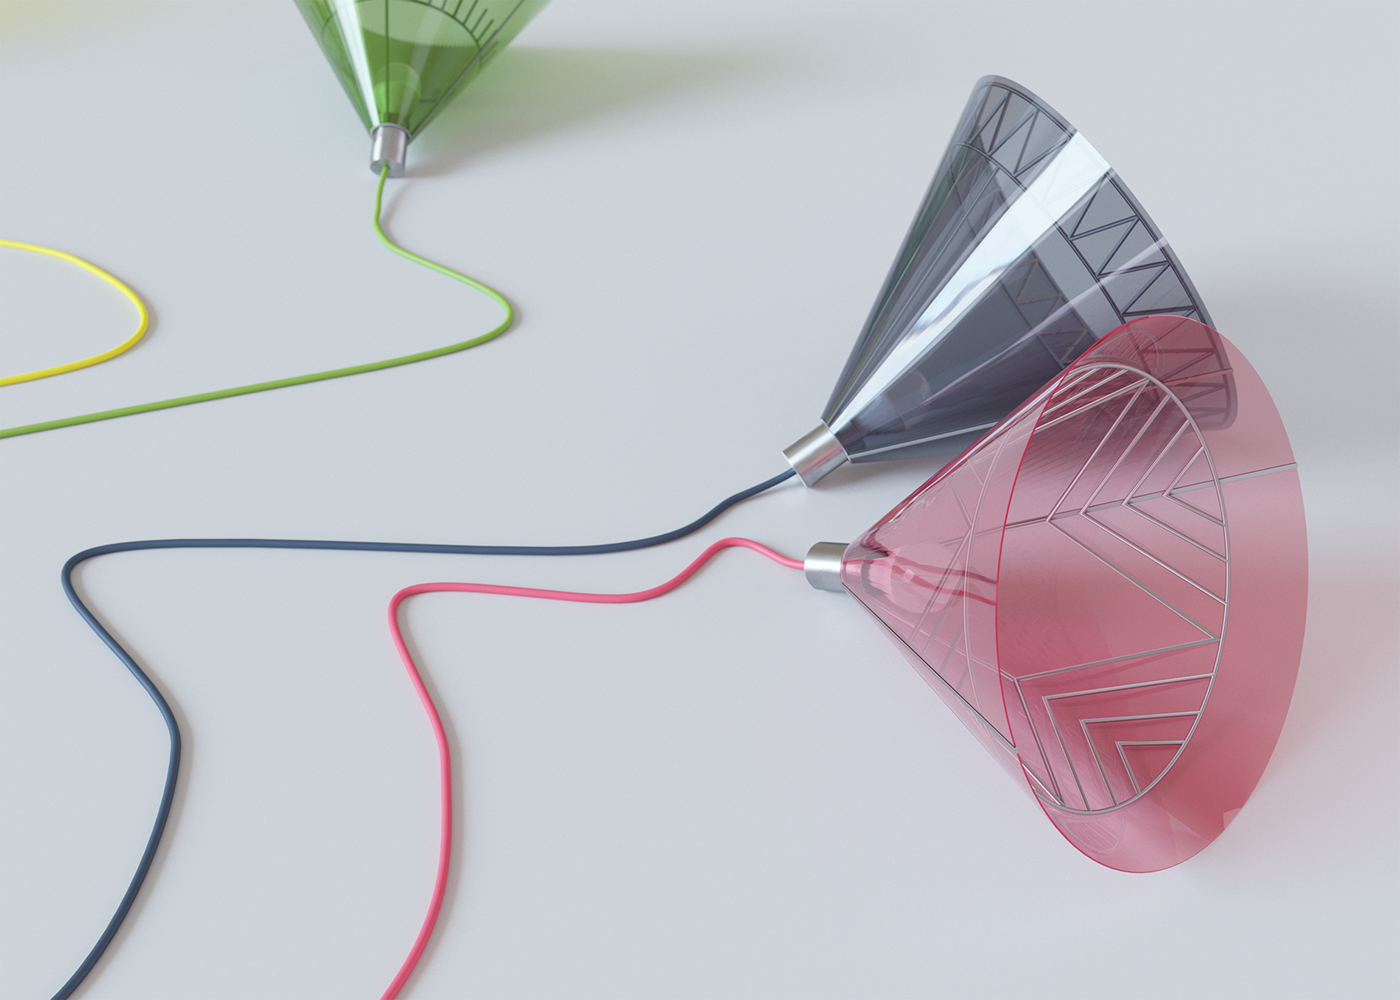 Polychrome Lamps, les suspensions pop d'Ihor Havrylenko